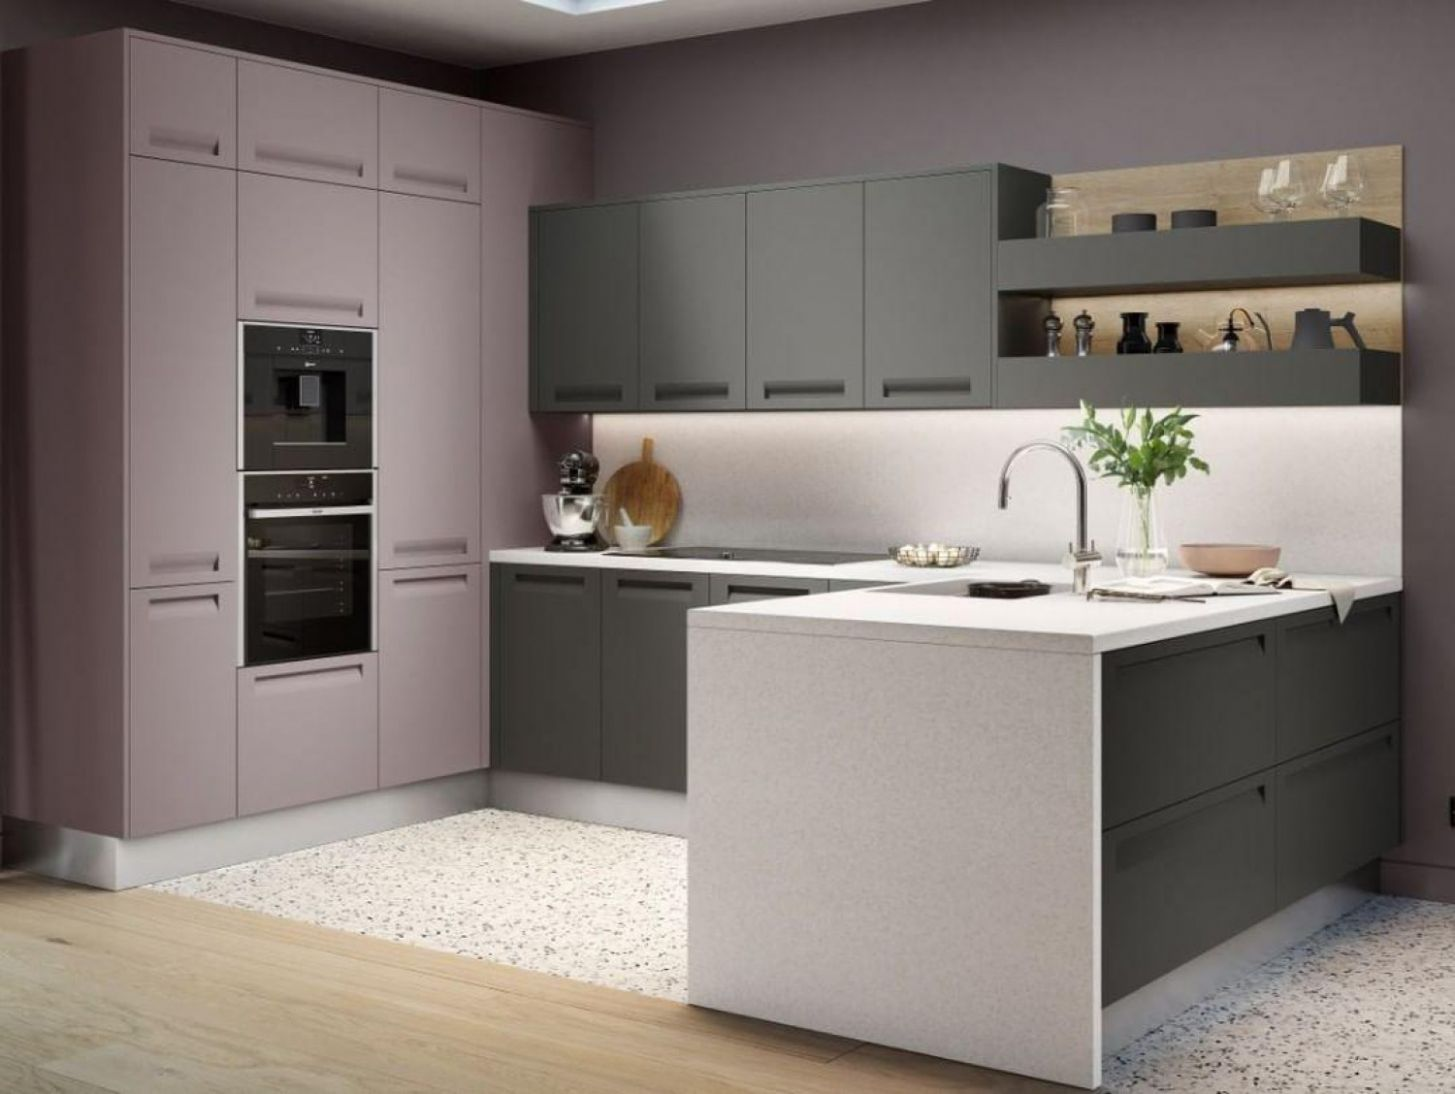 Kitchen colour scheme ideas | Omega PLC